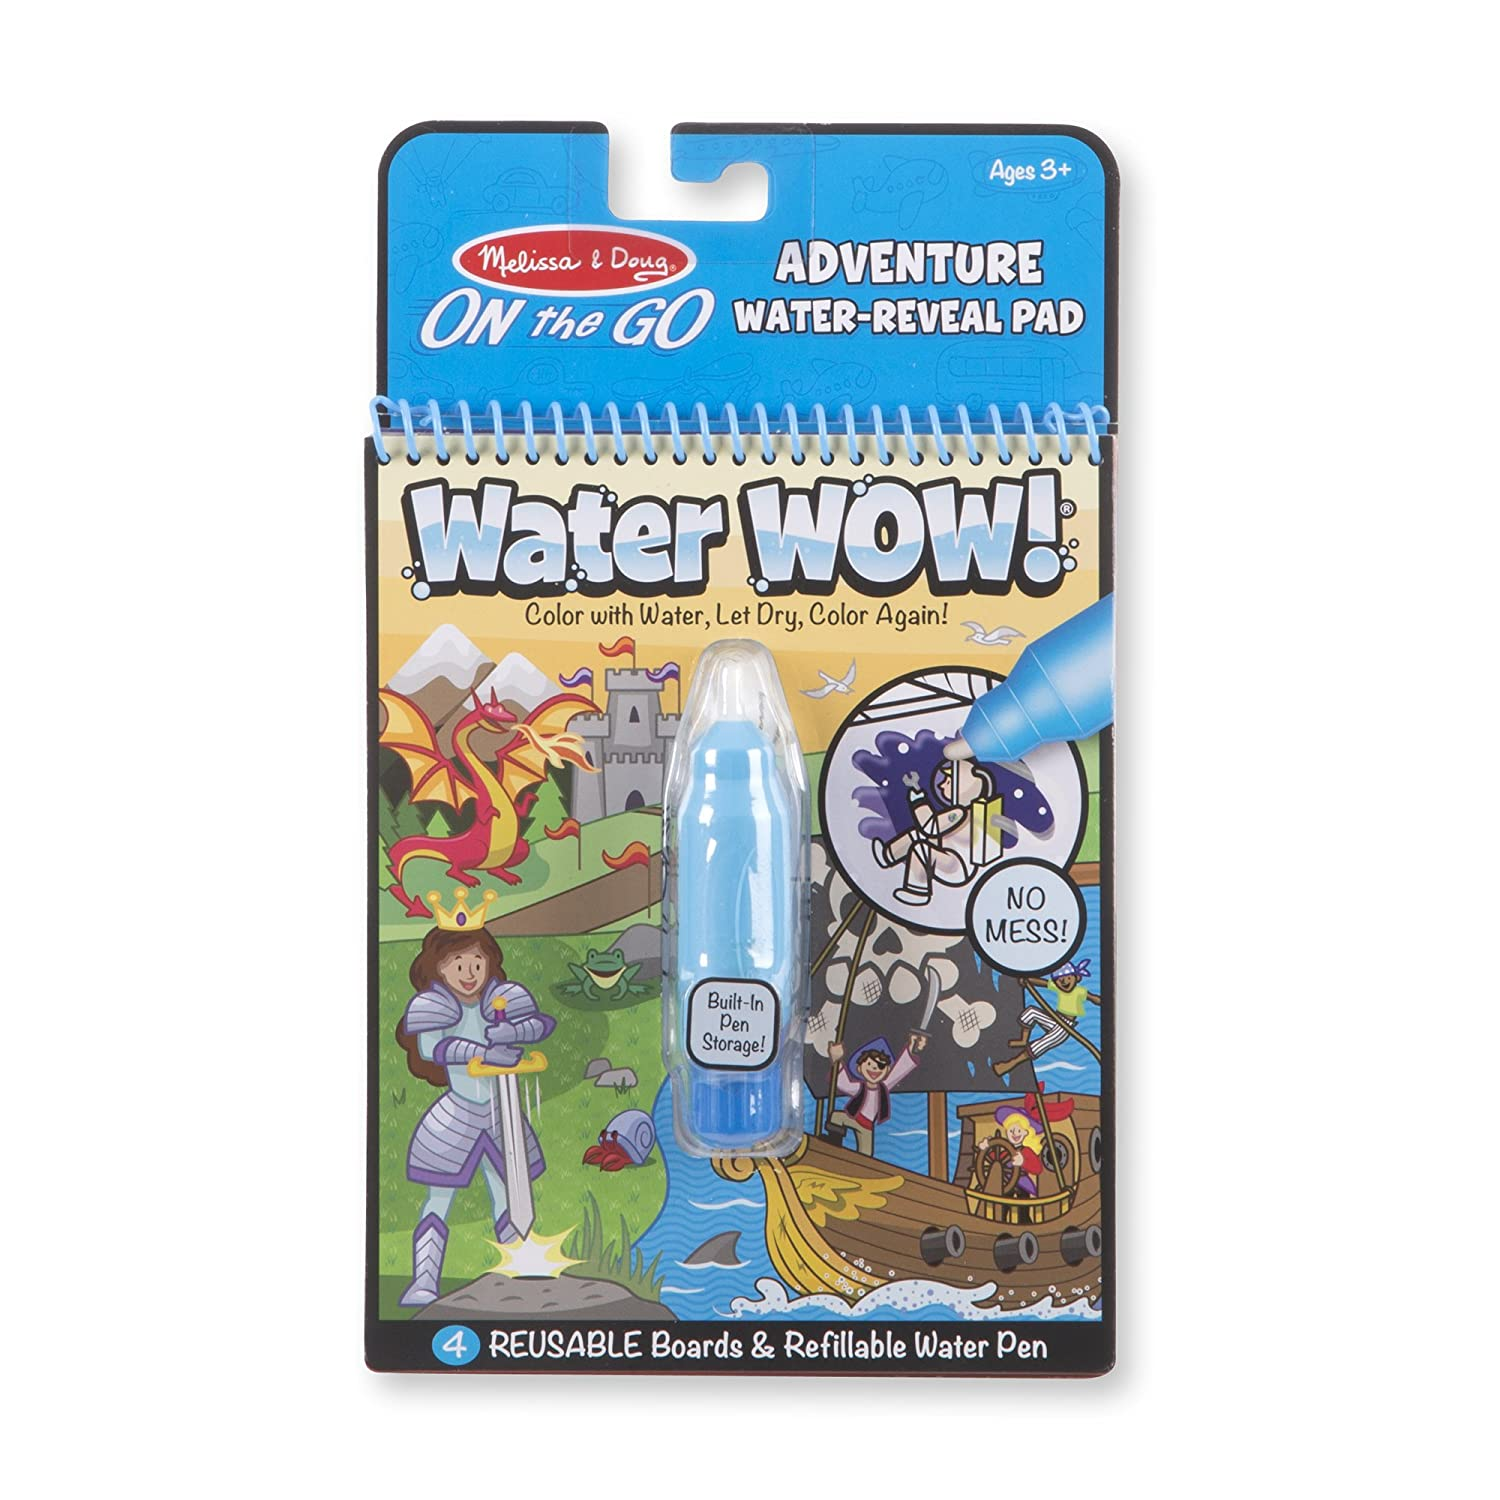 Melissa & Doug On The Go Water Wow! Adventure Activity Pad (Reusable  Water-Reveal Coloring Book, Refillable Water Pen, Great Gift for Girls and  Boys - ...